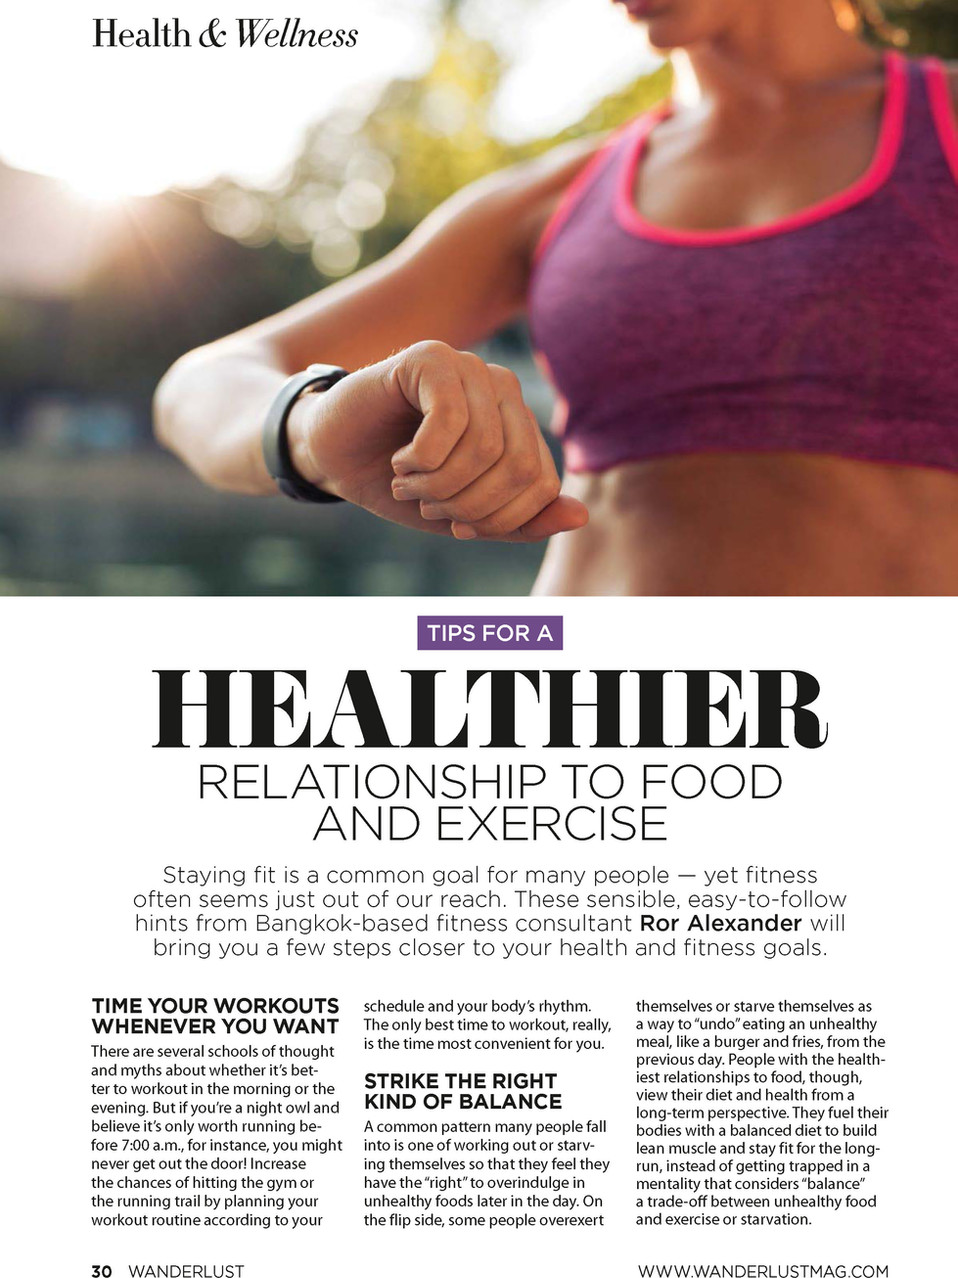 RELATIONSHIP WITH HEALTH